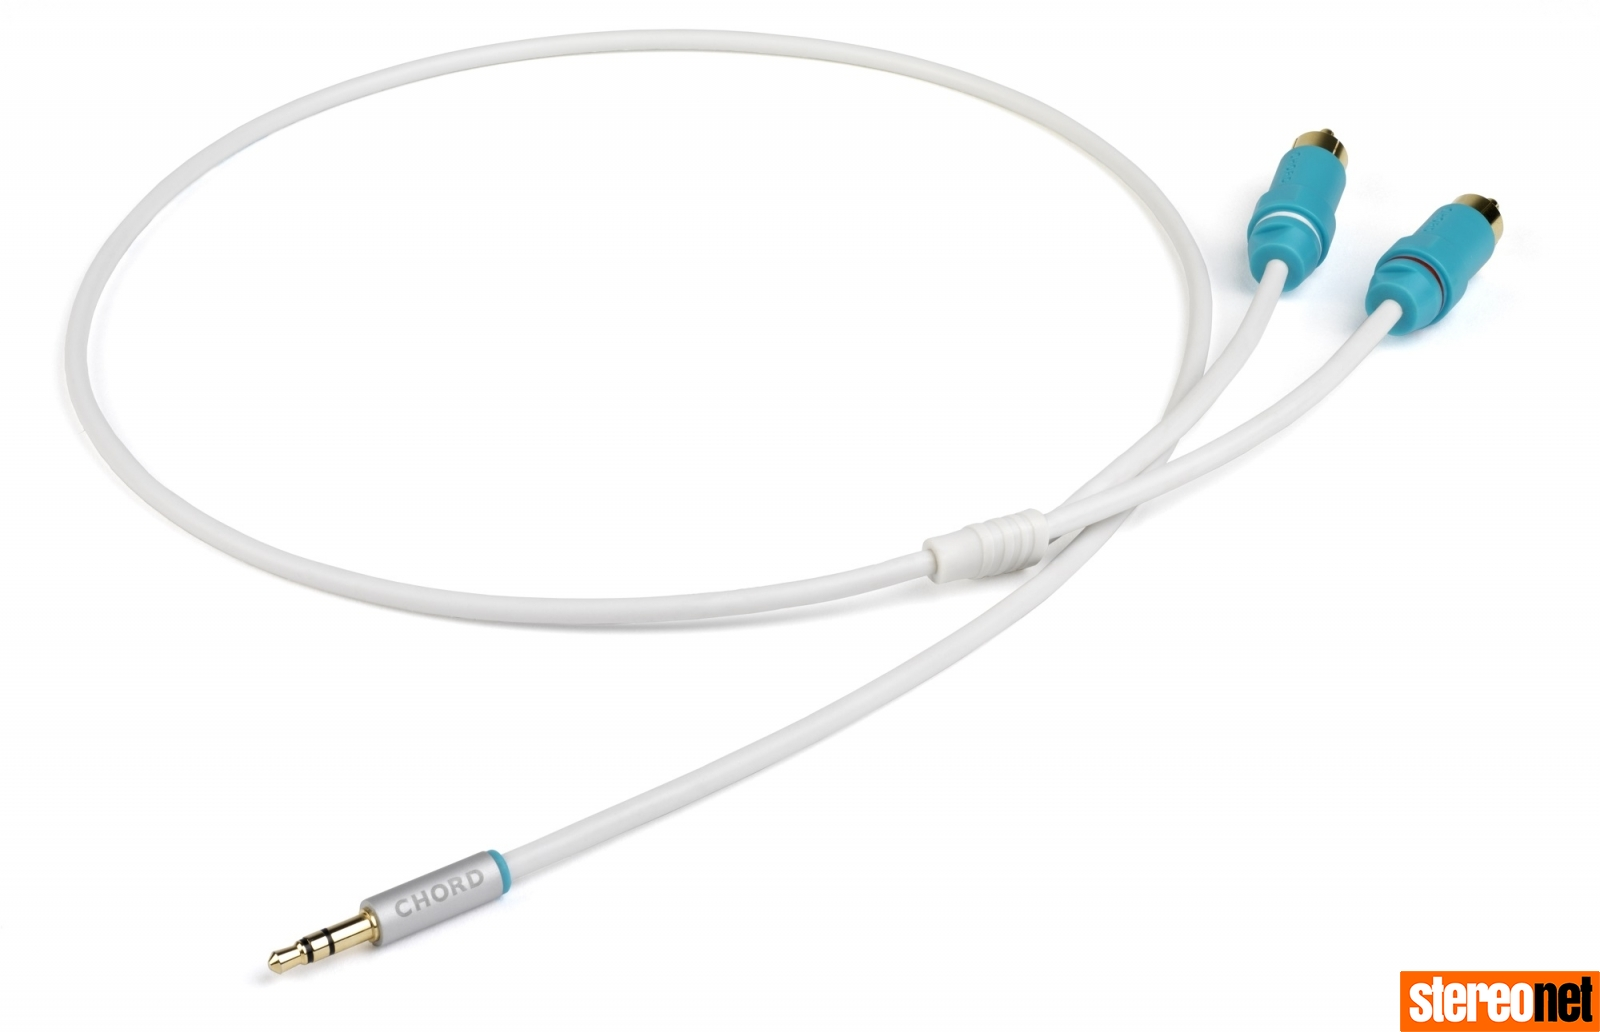 Chord Company C-jack aux cable